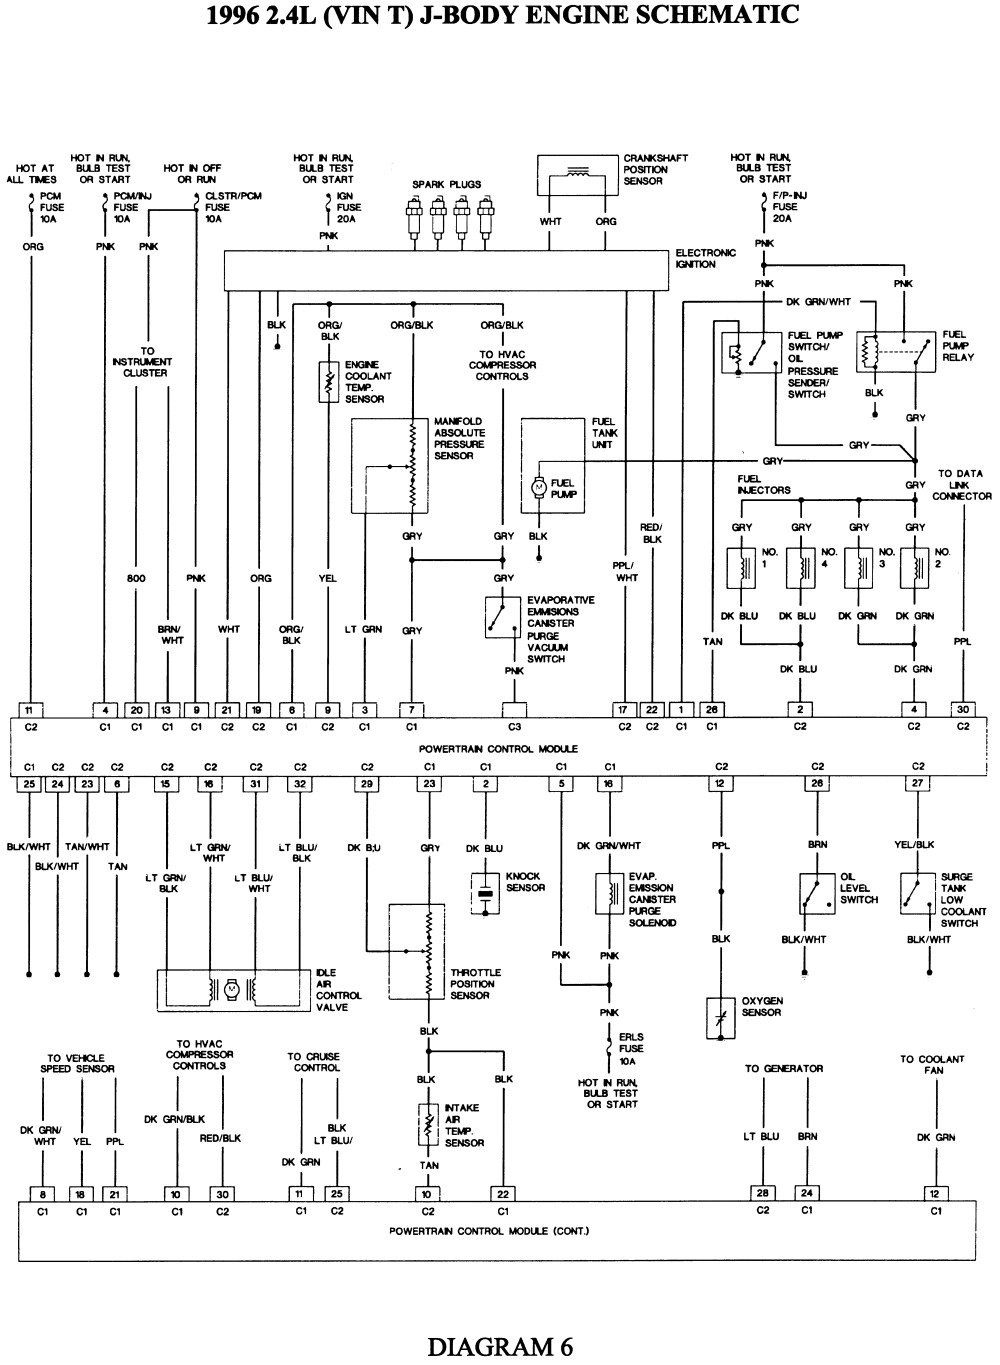 2012 Chevrolet Tahoe Fuse Box Layout Auto Electrical Wiring Diagram Related With